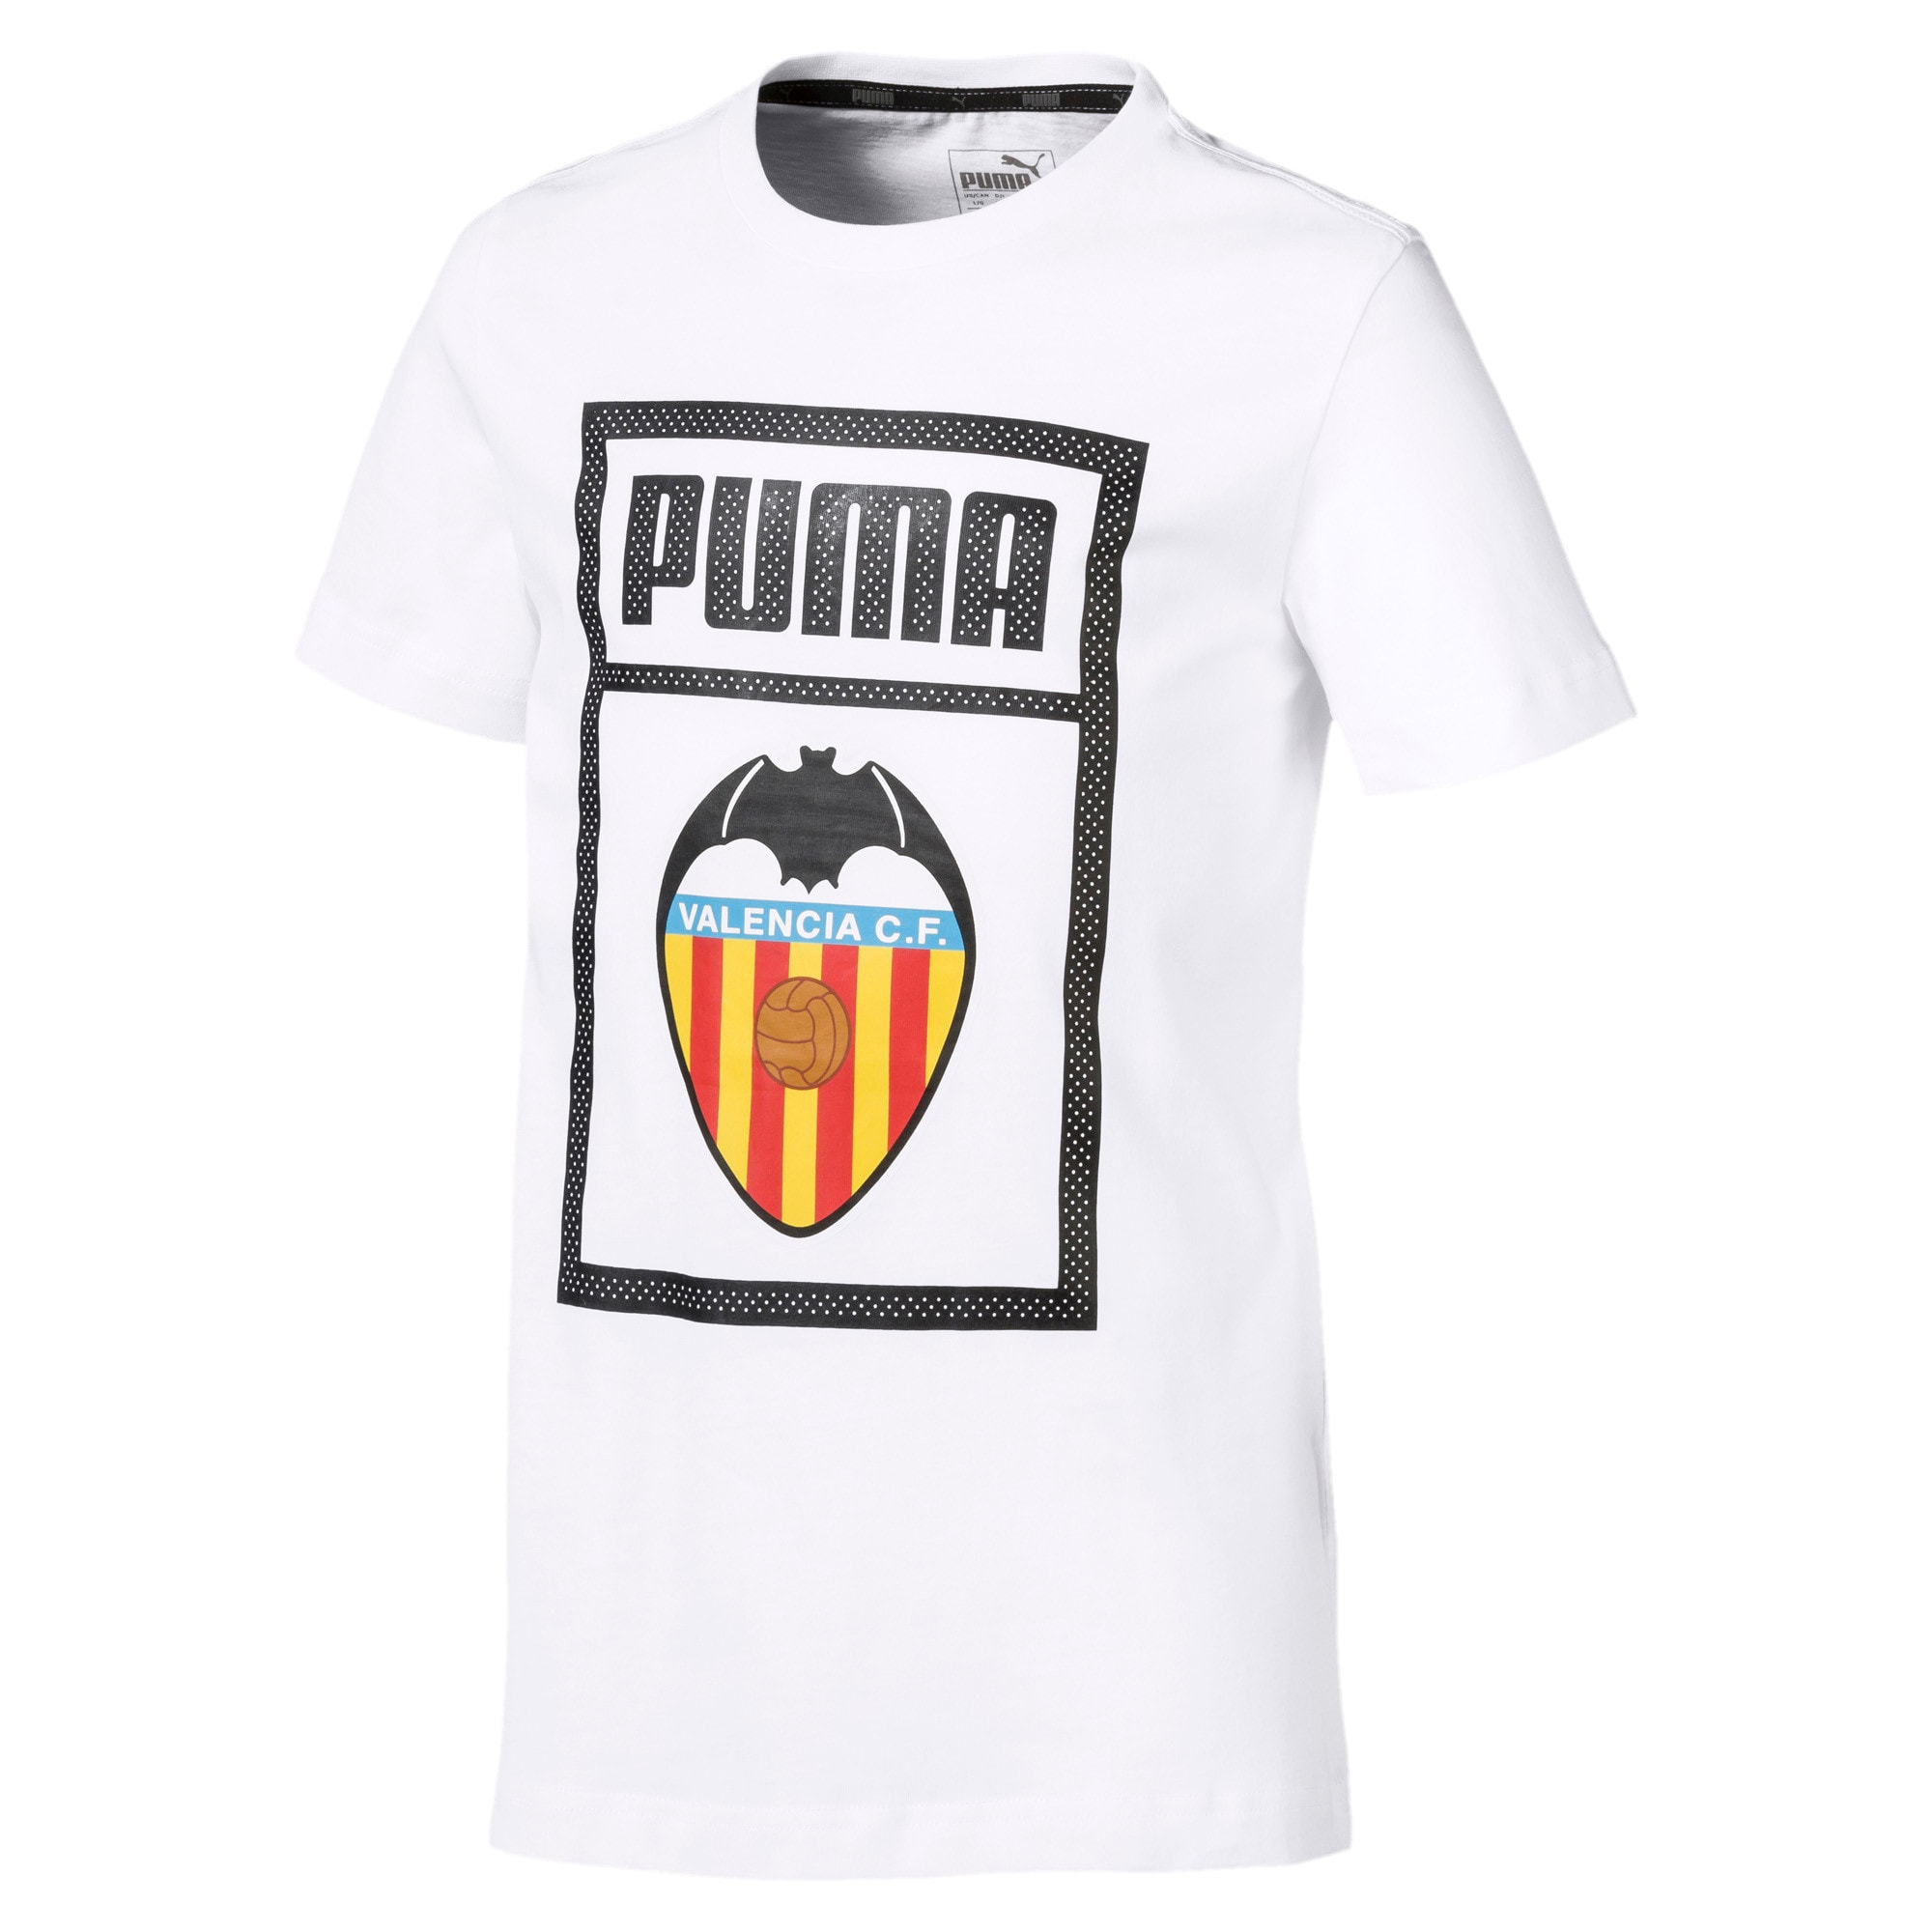 Valencia CF Shoe Tag Boys' Tee, Puma White, large